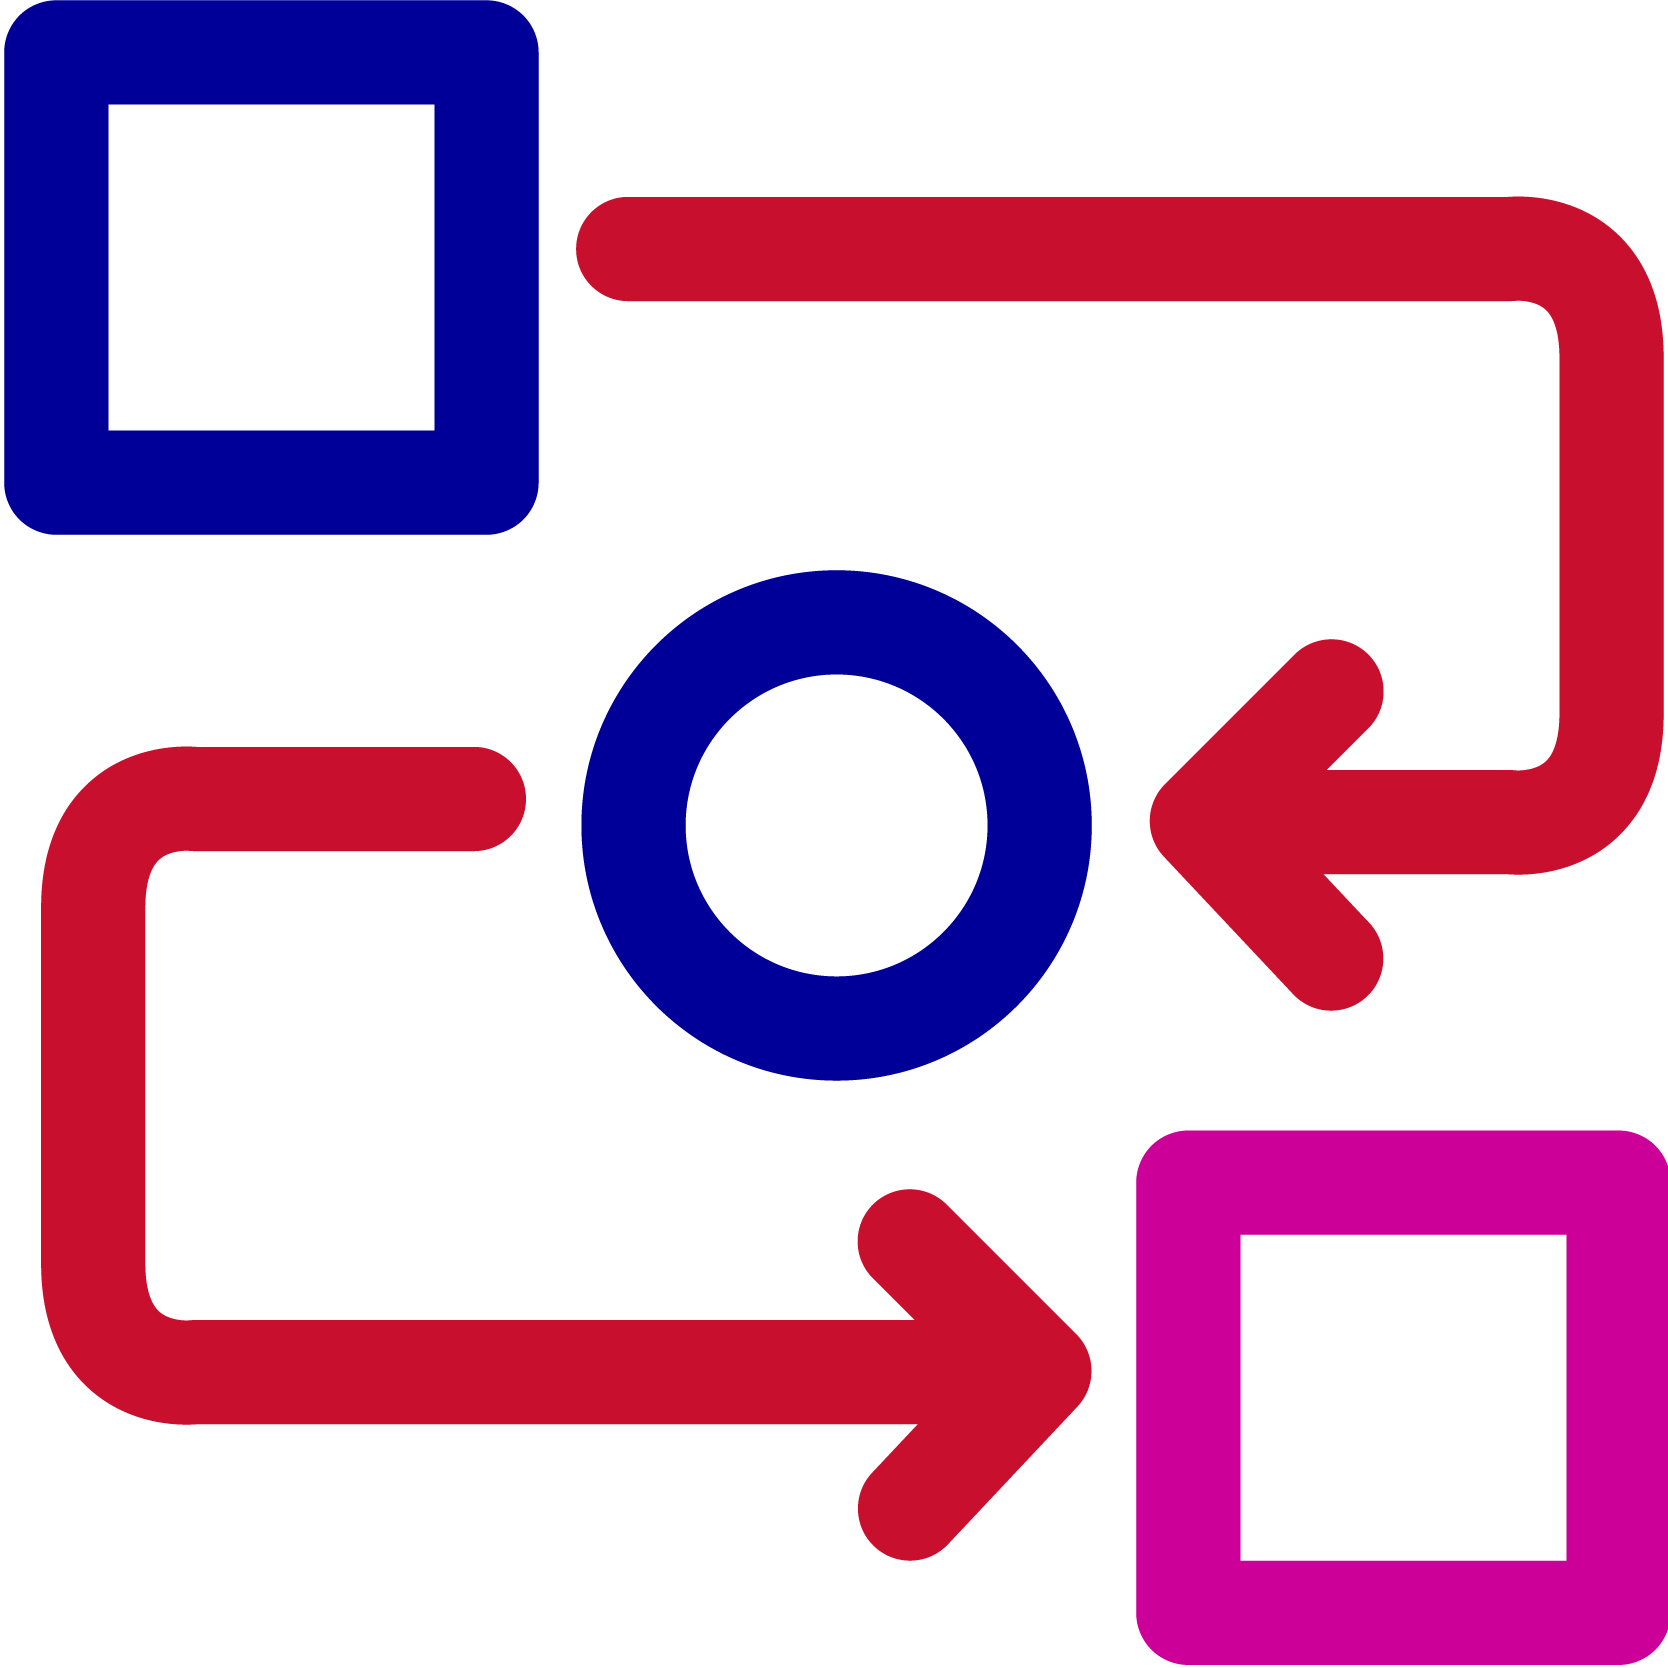 jnj_icon_business_process_multi_rgbpng_jnjiconbusinessprocessmultirgb.png